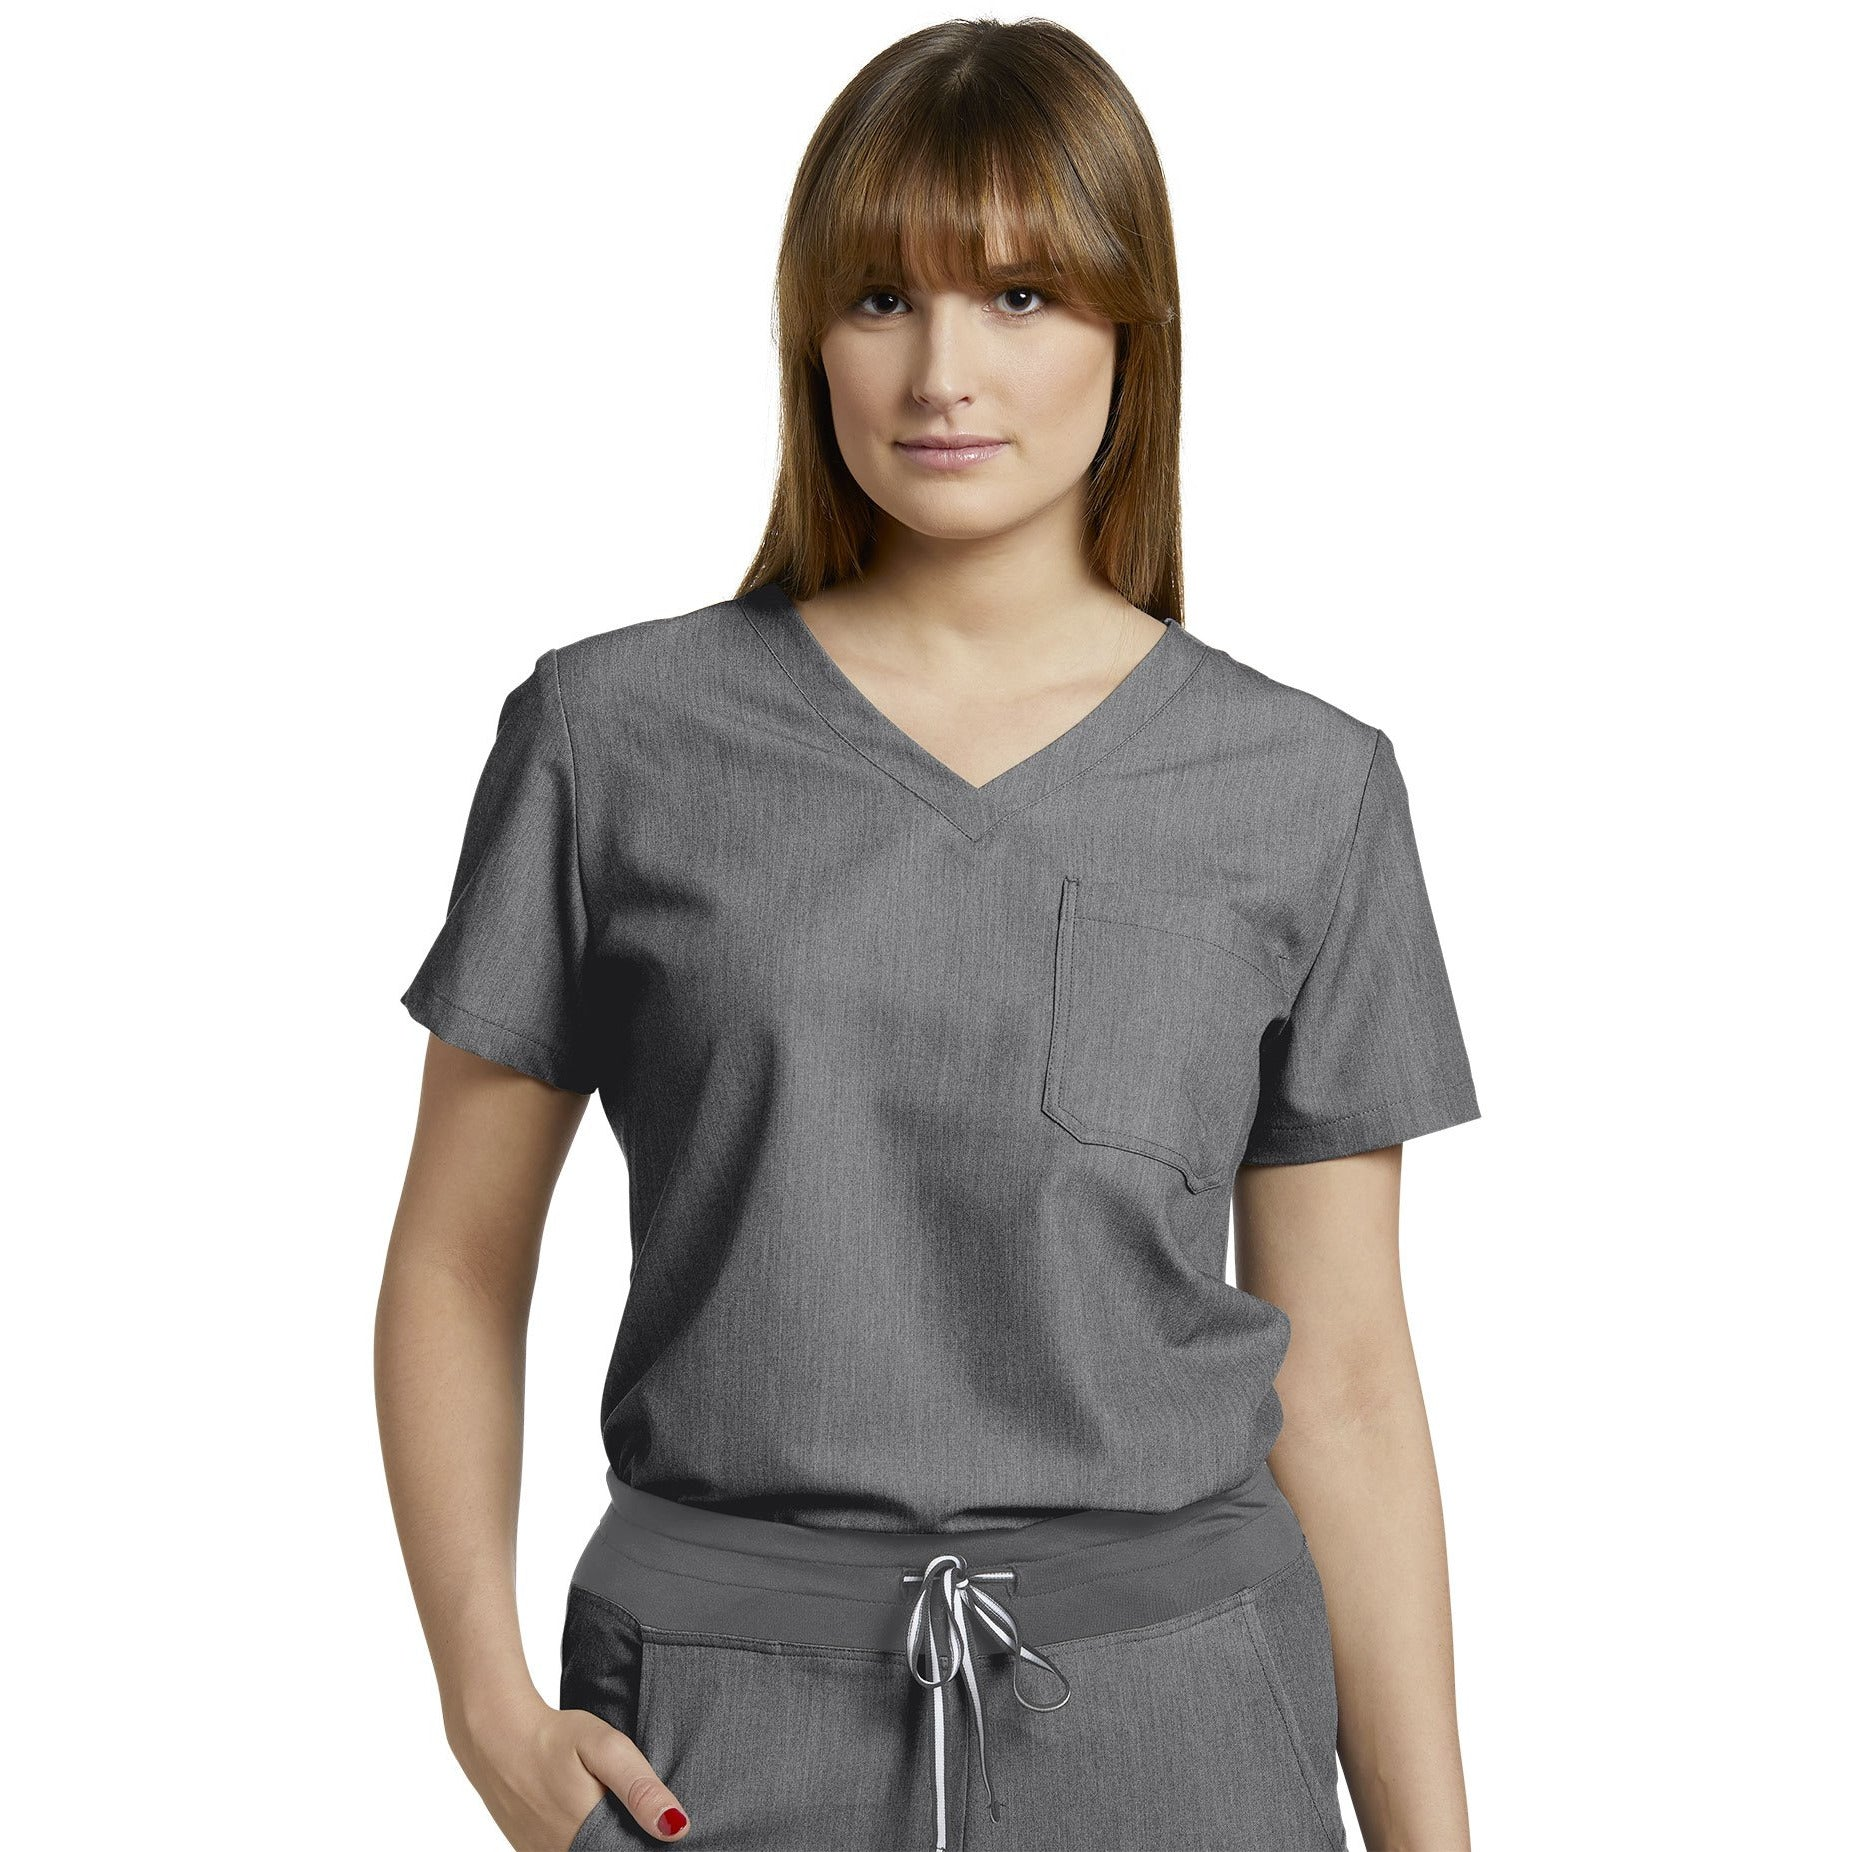 794 V-Tess Women's V-Neck Scrub Top